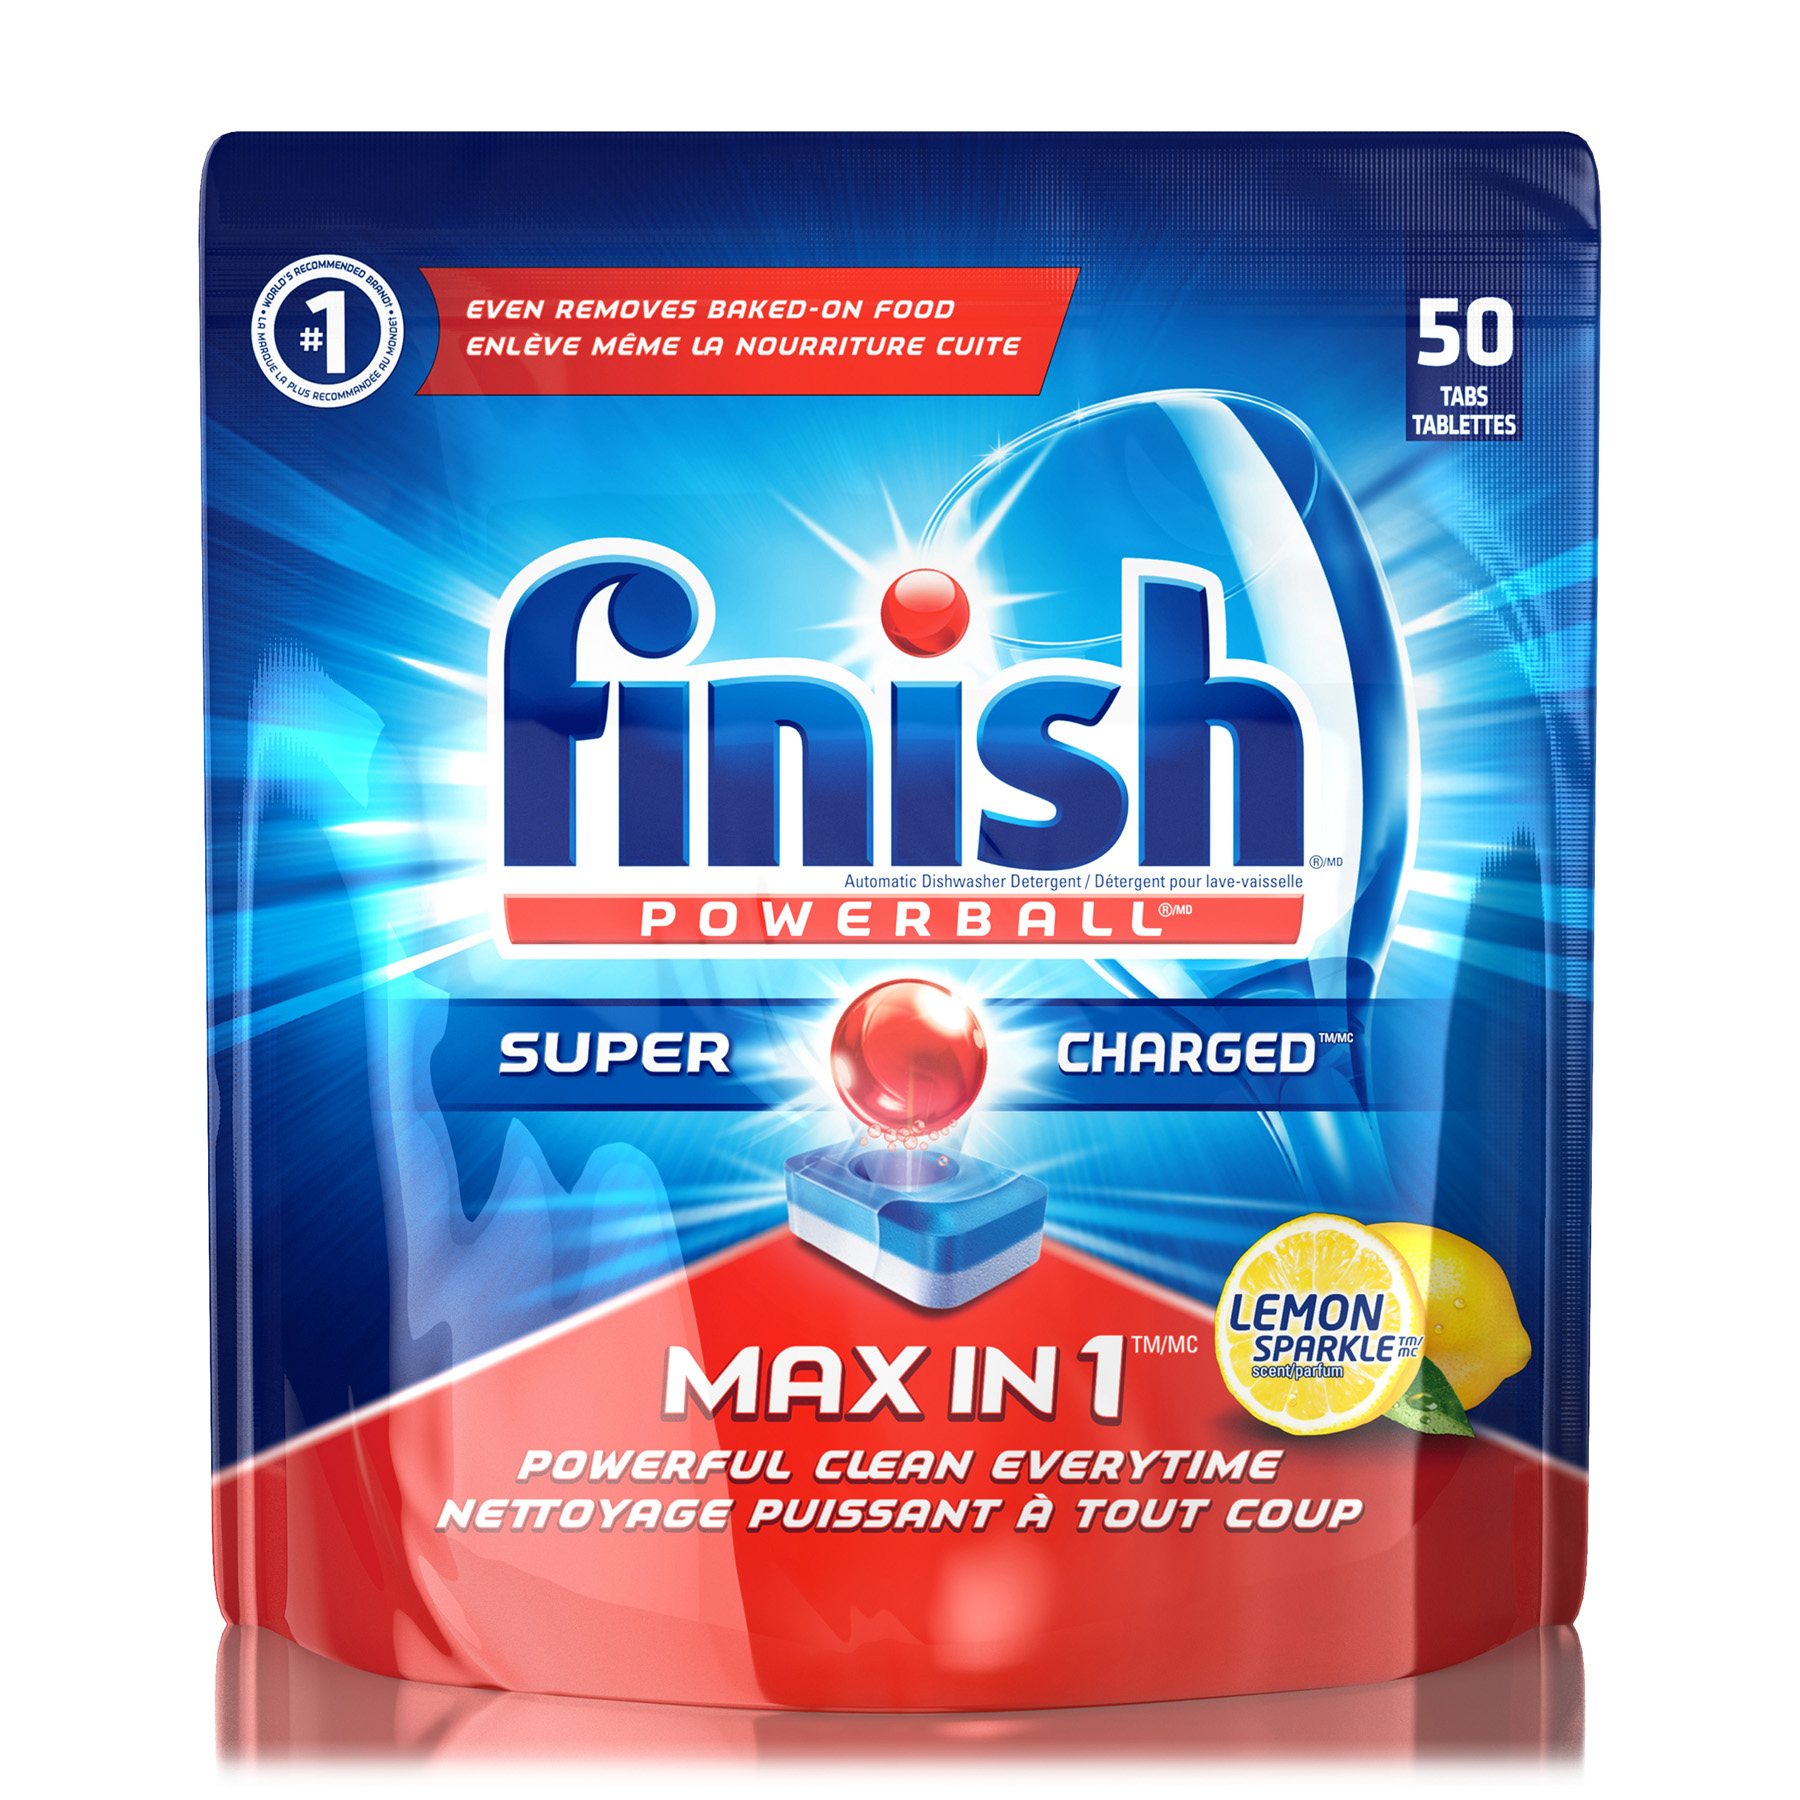 FINISH Powerball Max In 1 Lemon Sparkle Tablets Canada Photo